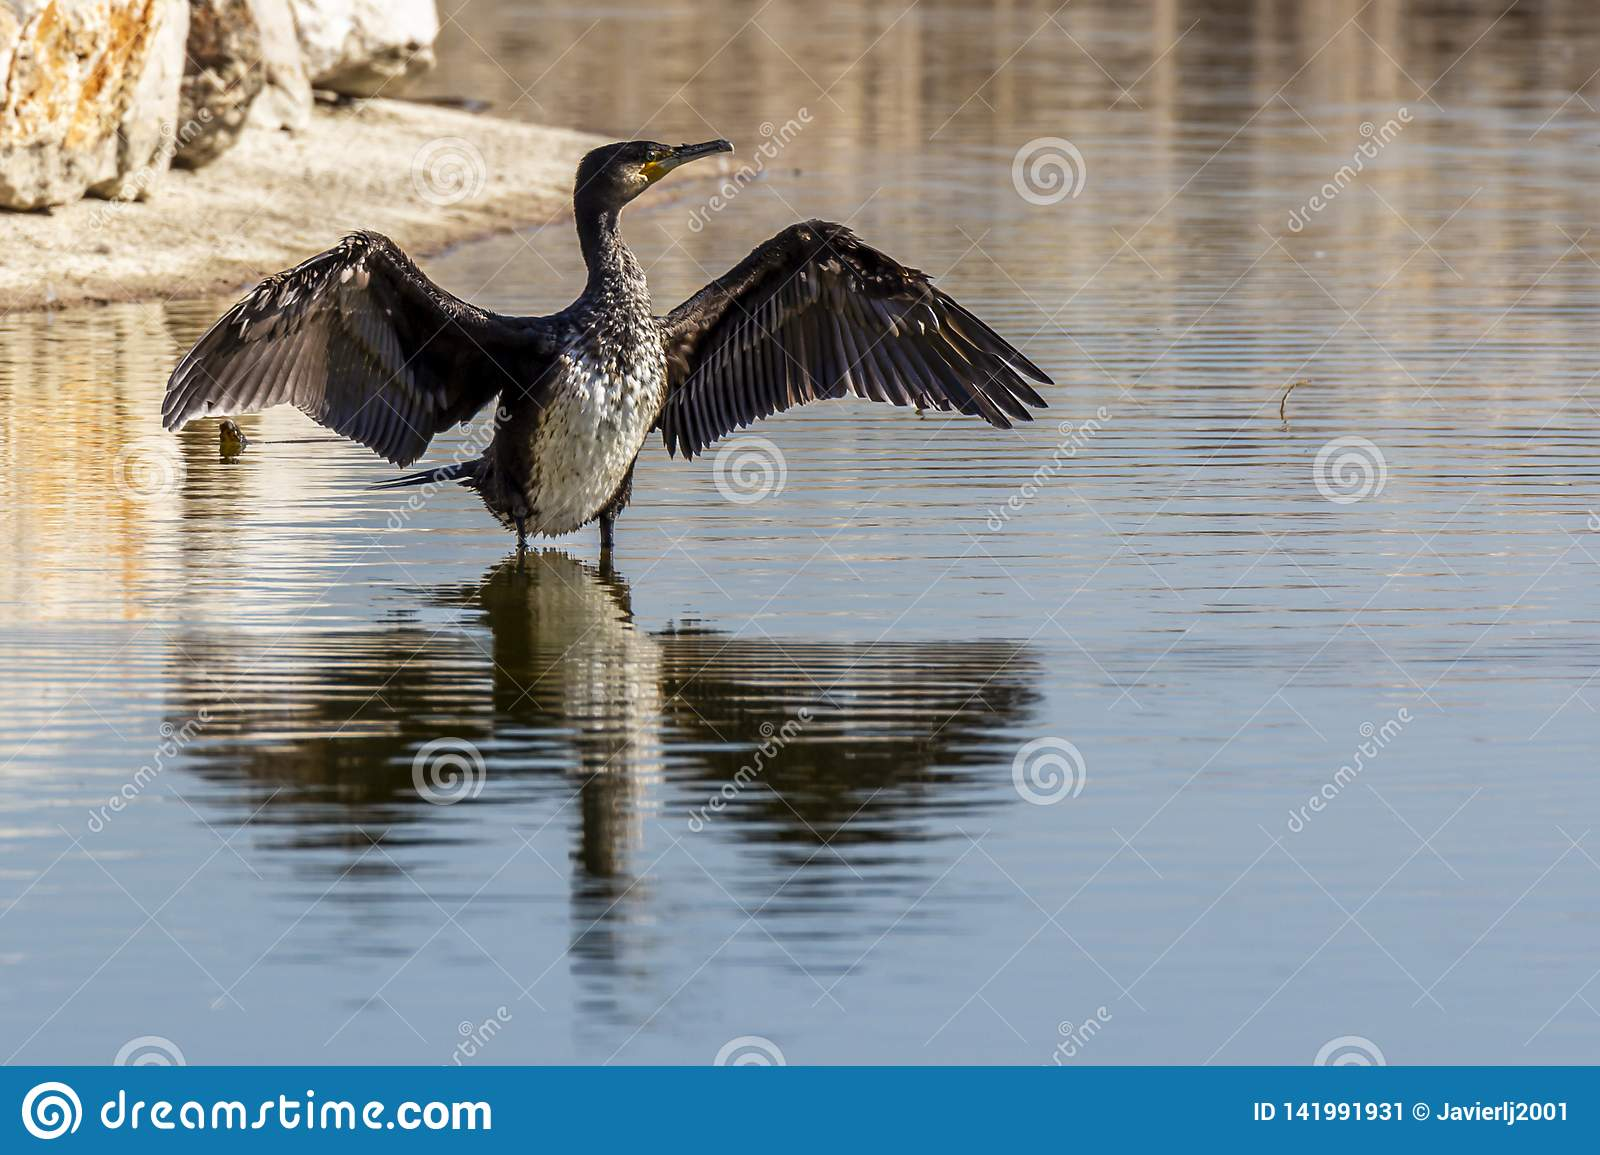 Cormorant drying its wet wings after fishing